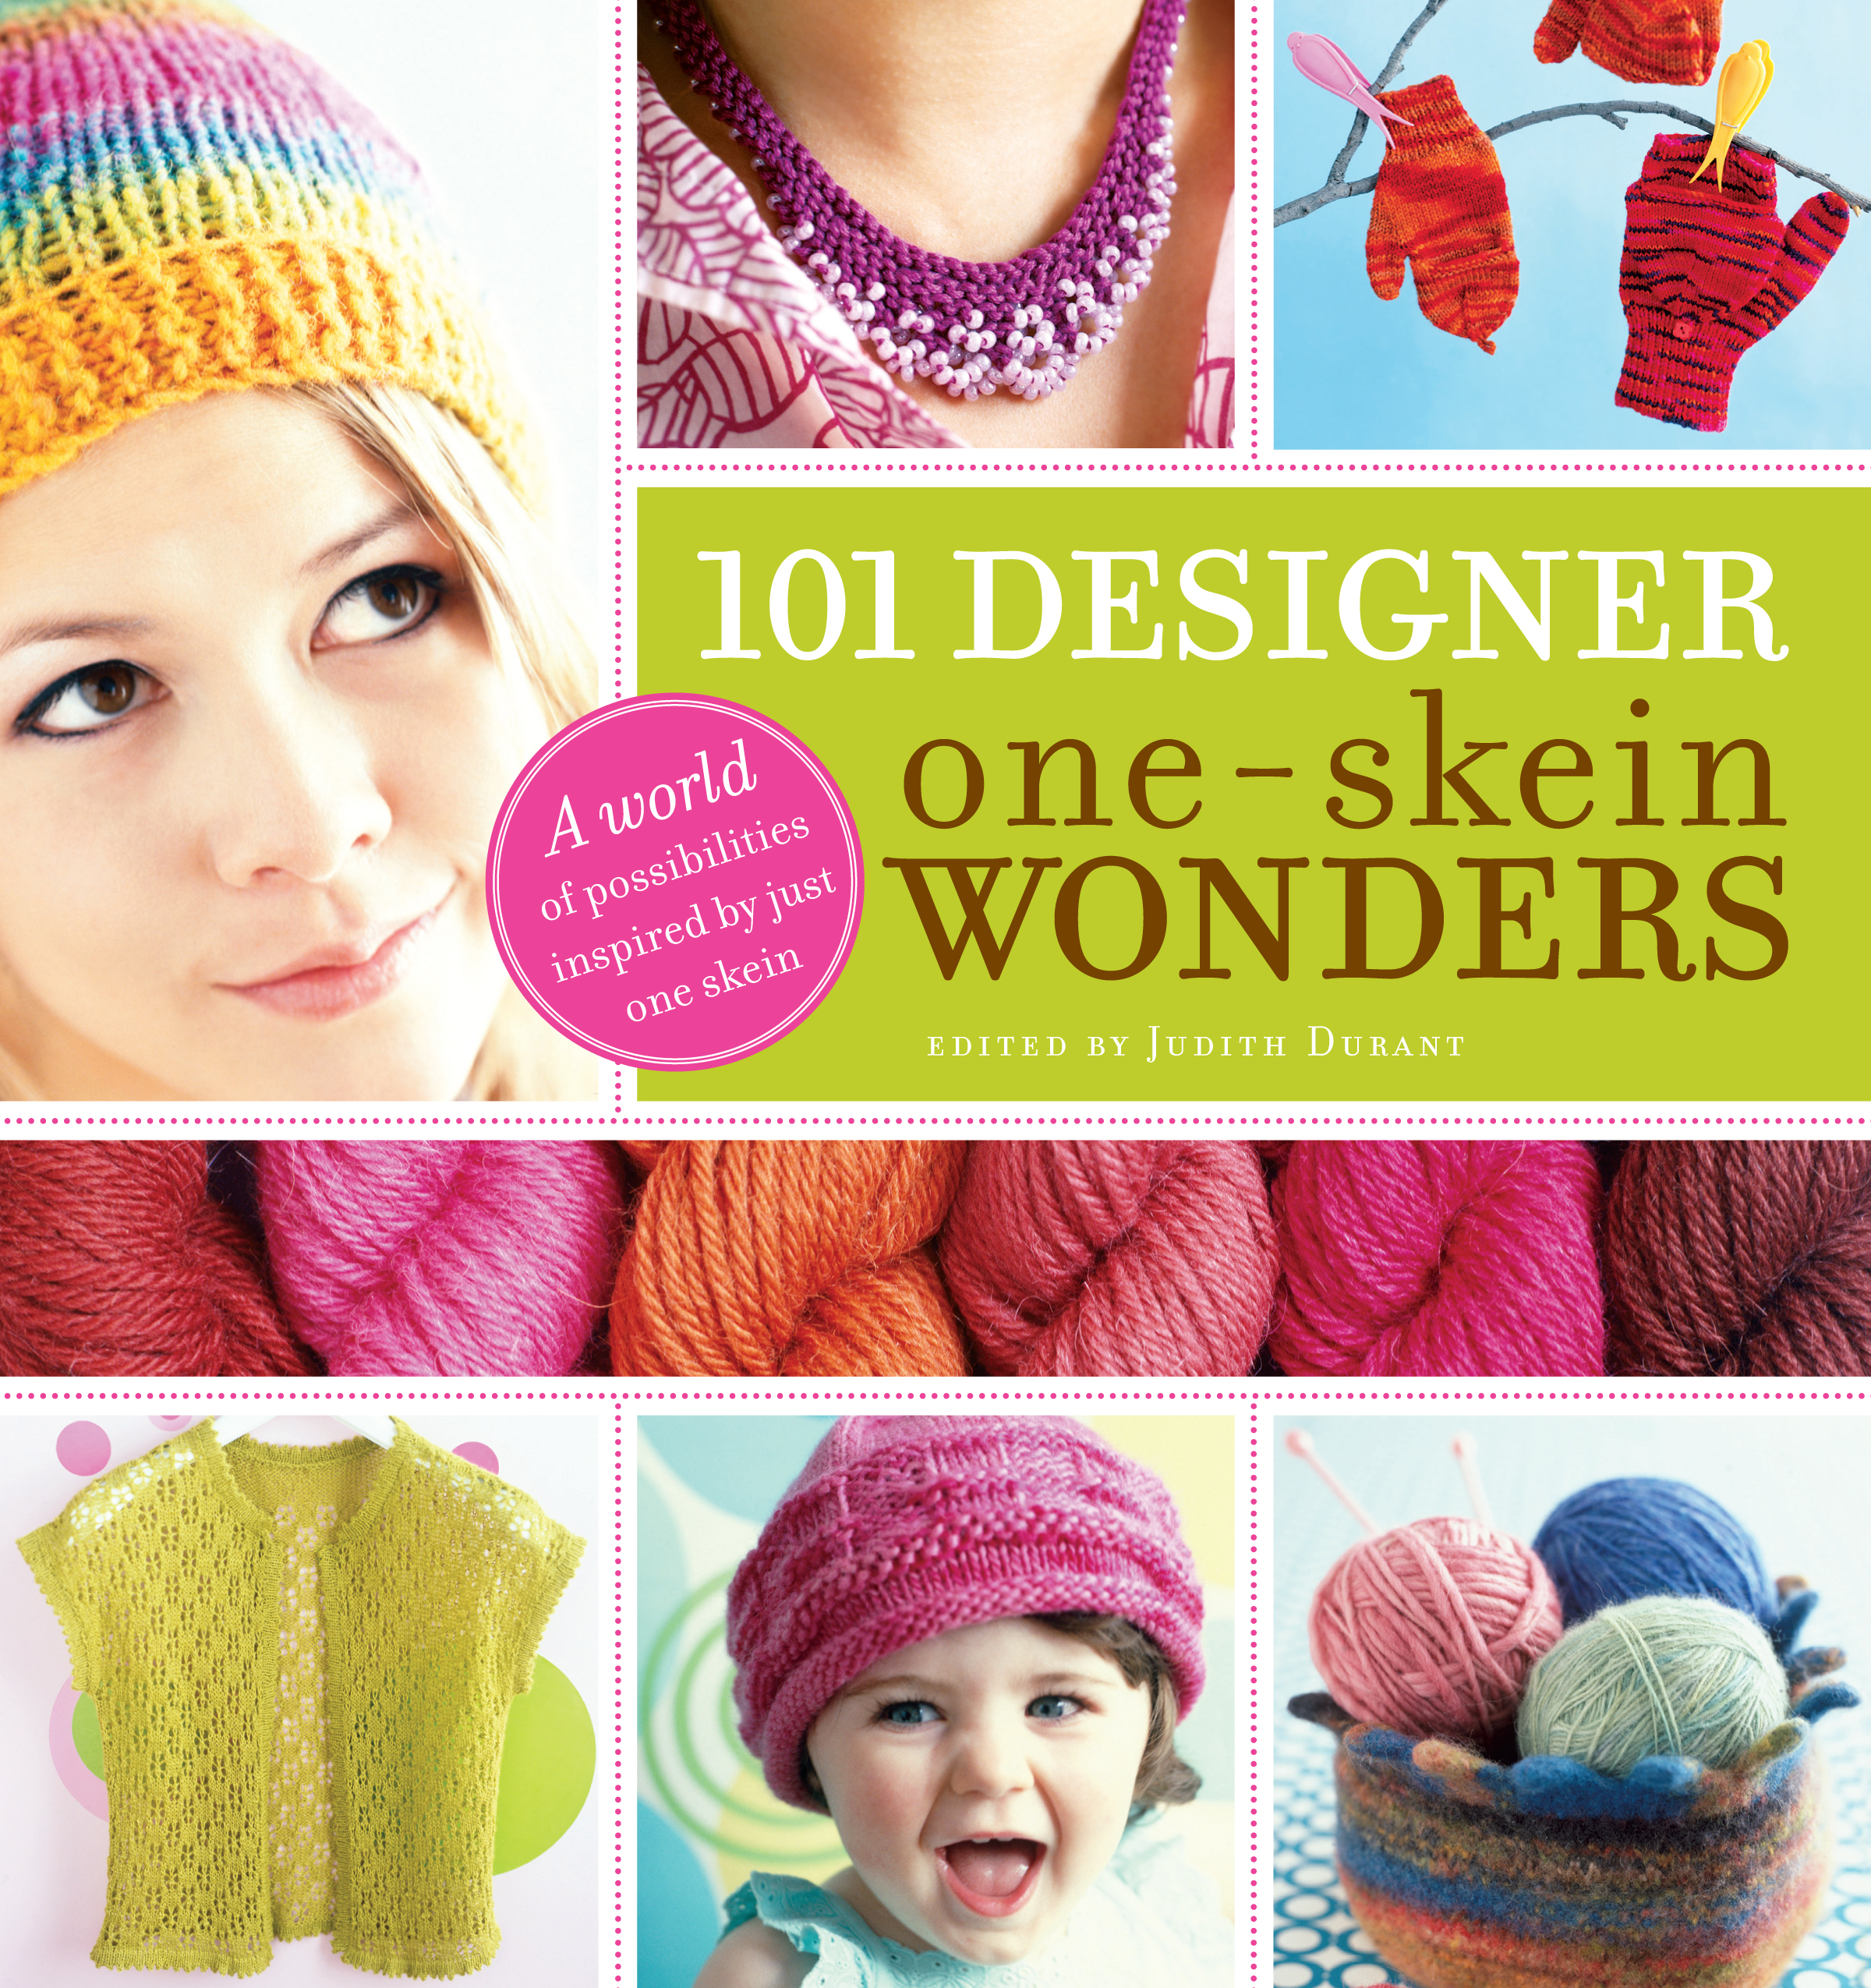 101 Designer One-Skein Wonders®